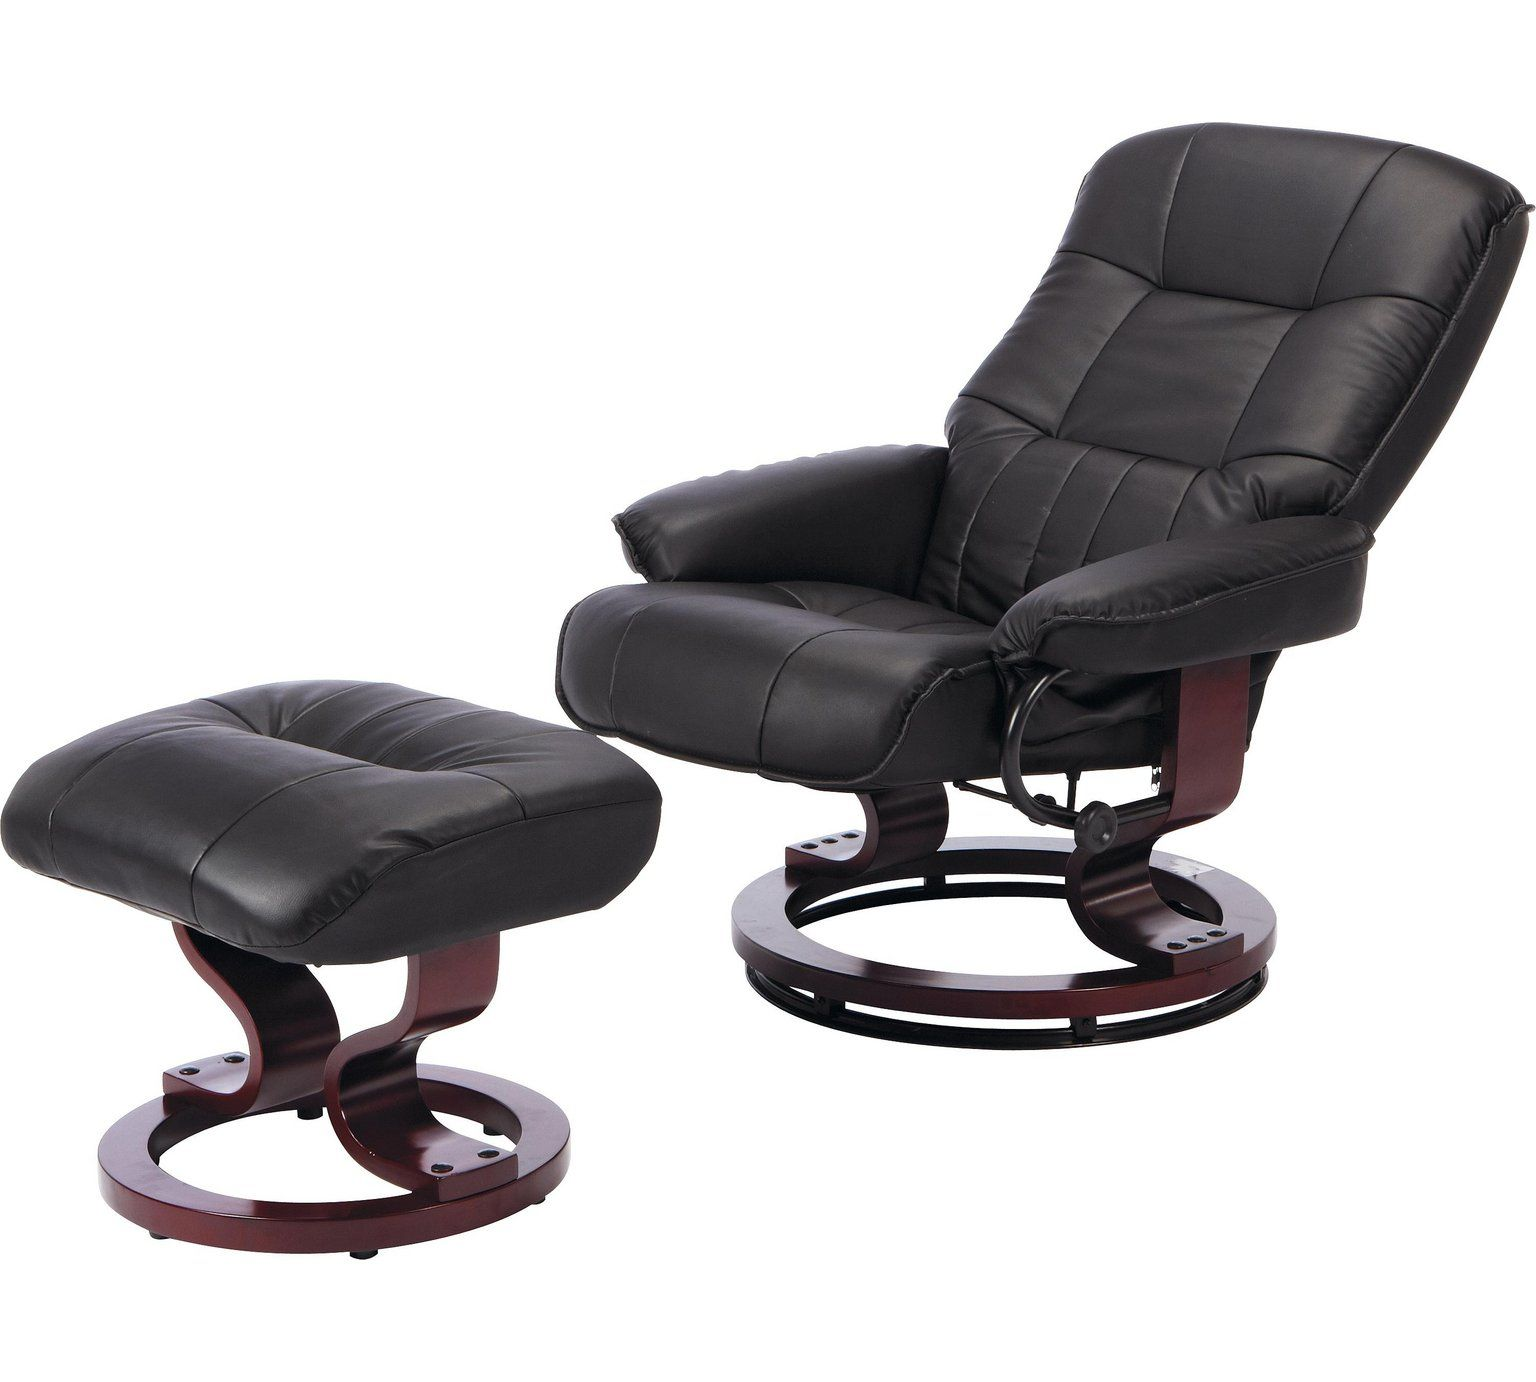 Buy Argos Home Santos Recliner Chair And Footstool Black Armchairs And Chairs Argos Black Armchair Leather Recliner Chair Leather Recliner